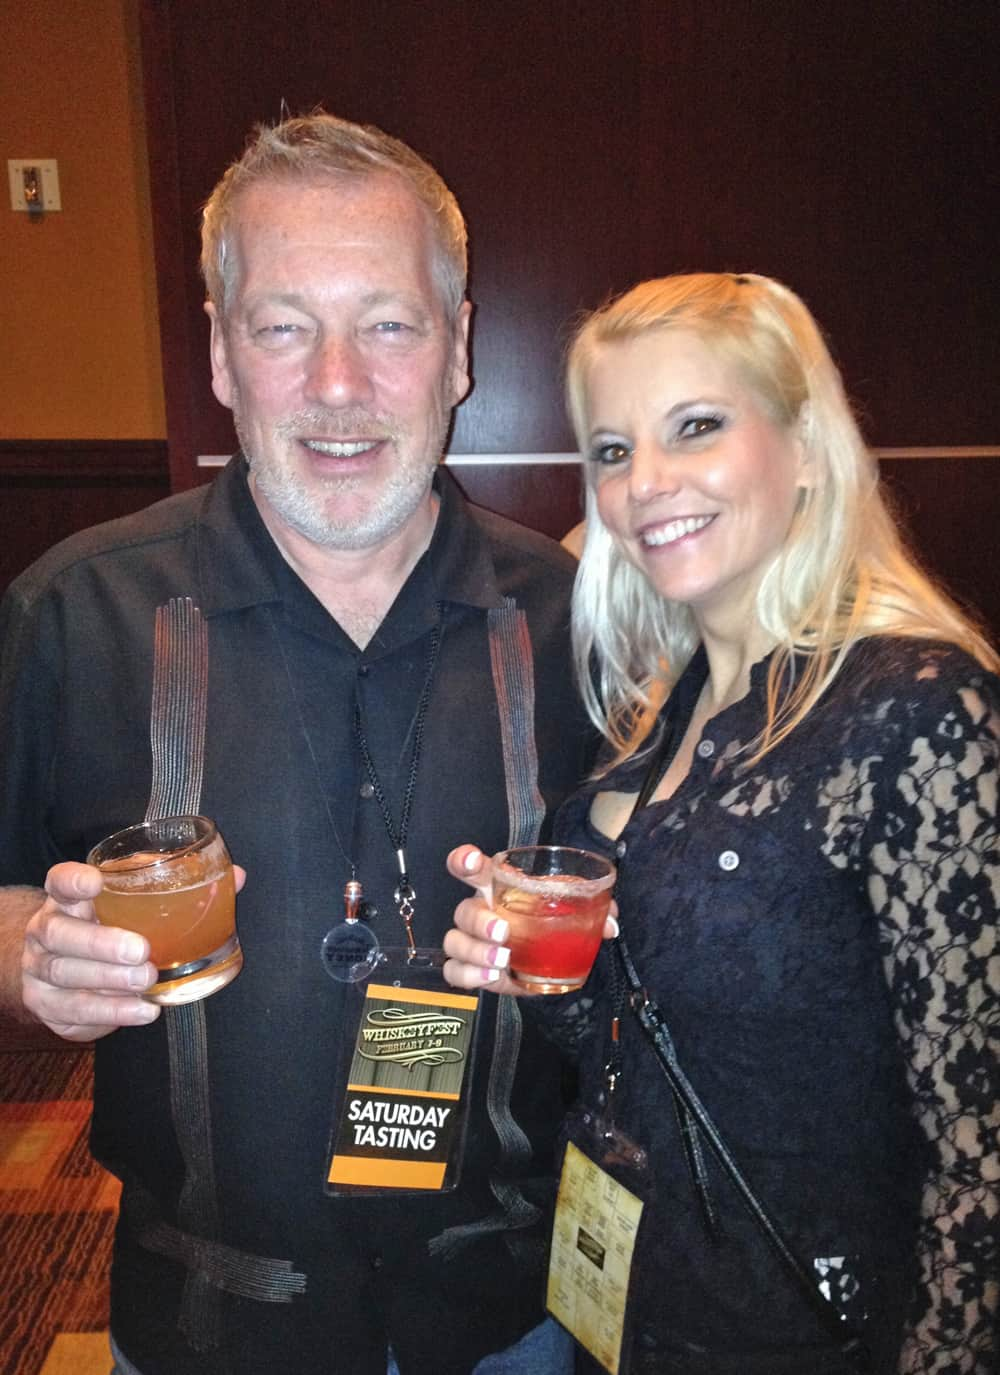 WhiskeyFest2014 - ADCook and Rhonda, Las Vegas, NV